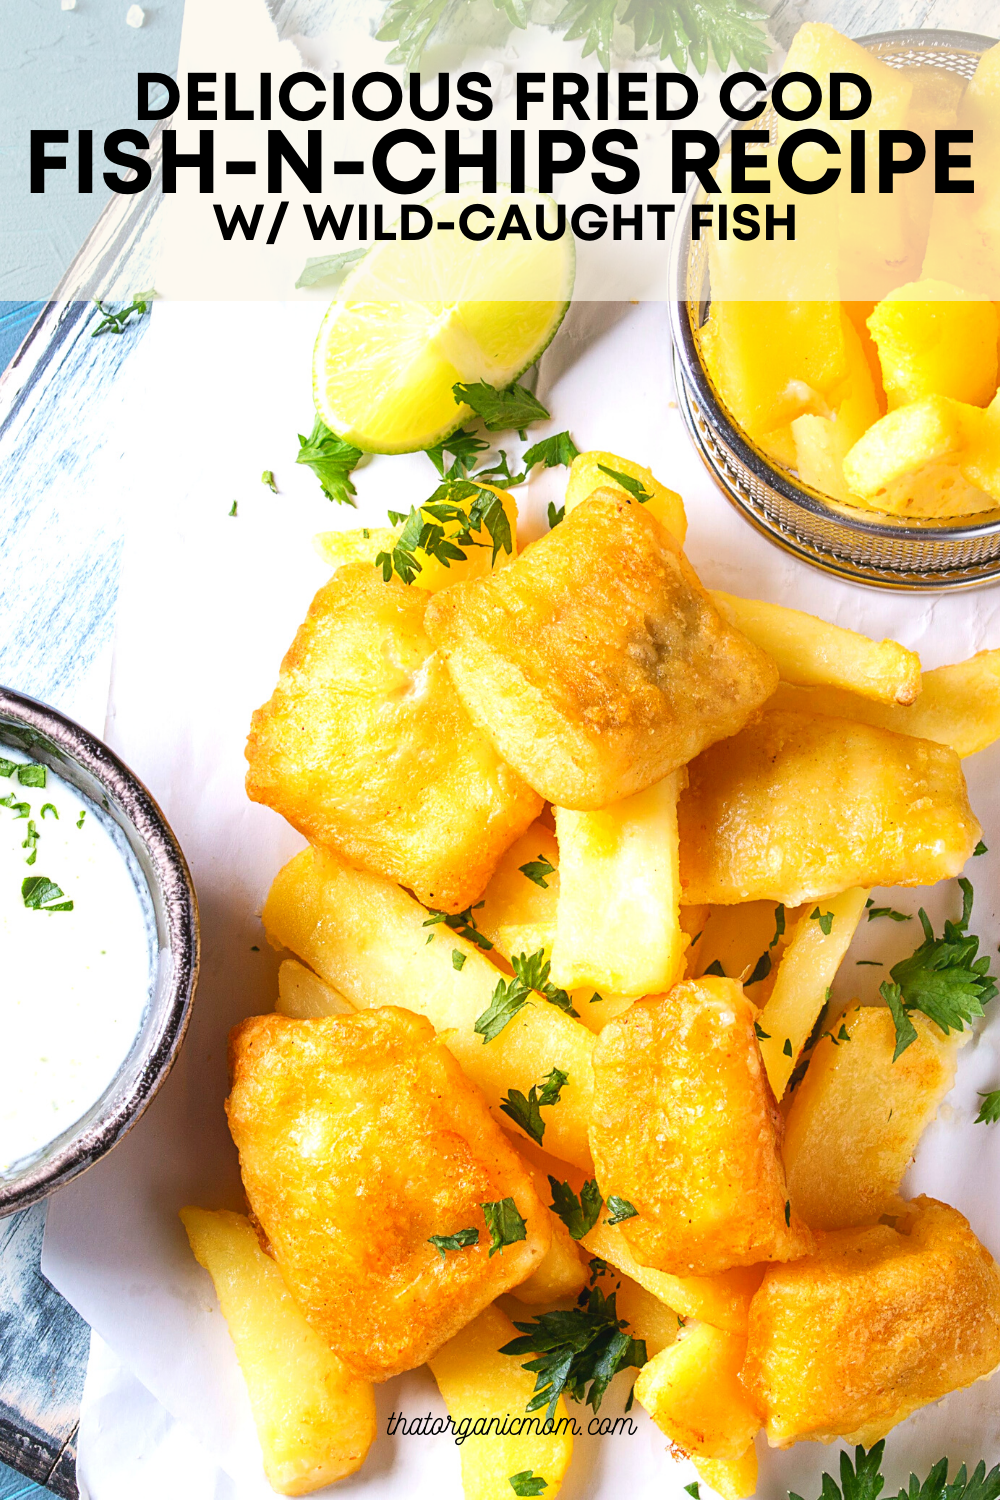 Delicious Fried or Baked Cod Recipe Made with Wild-Caught Fish